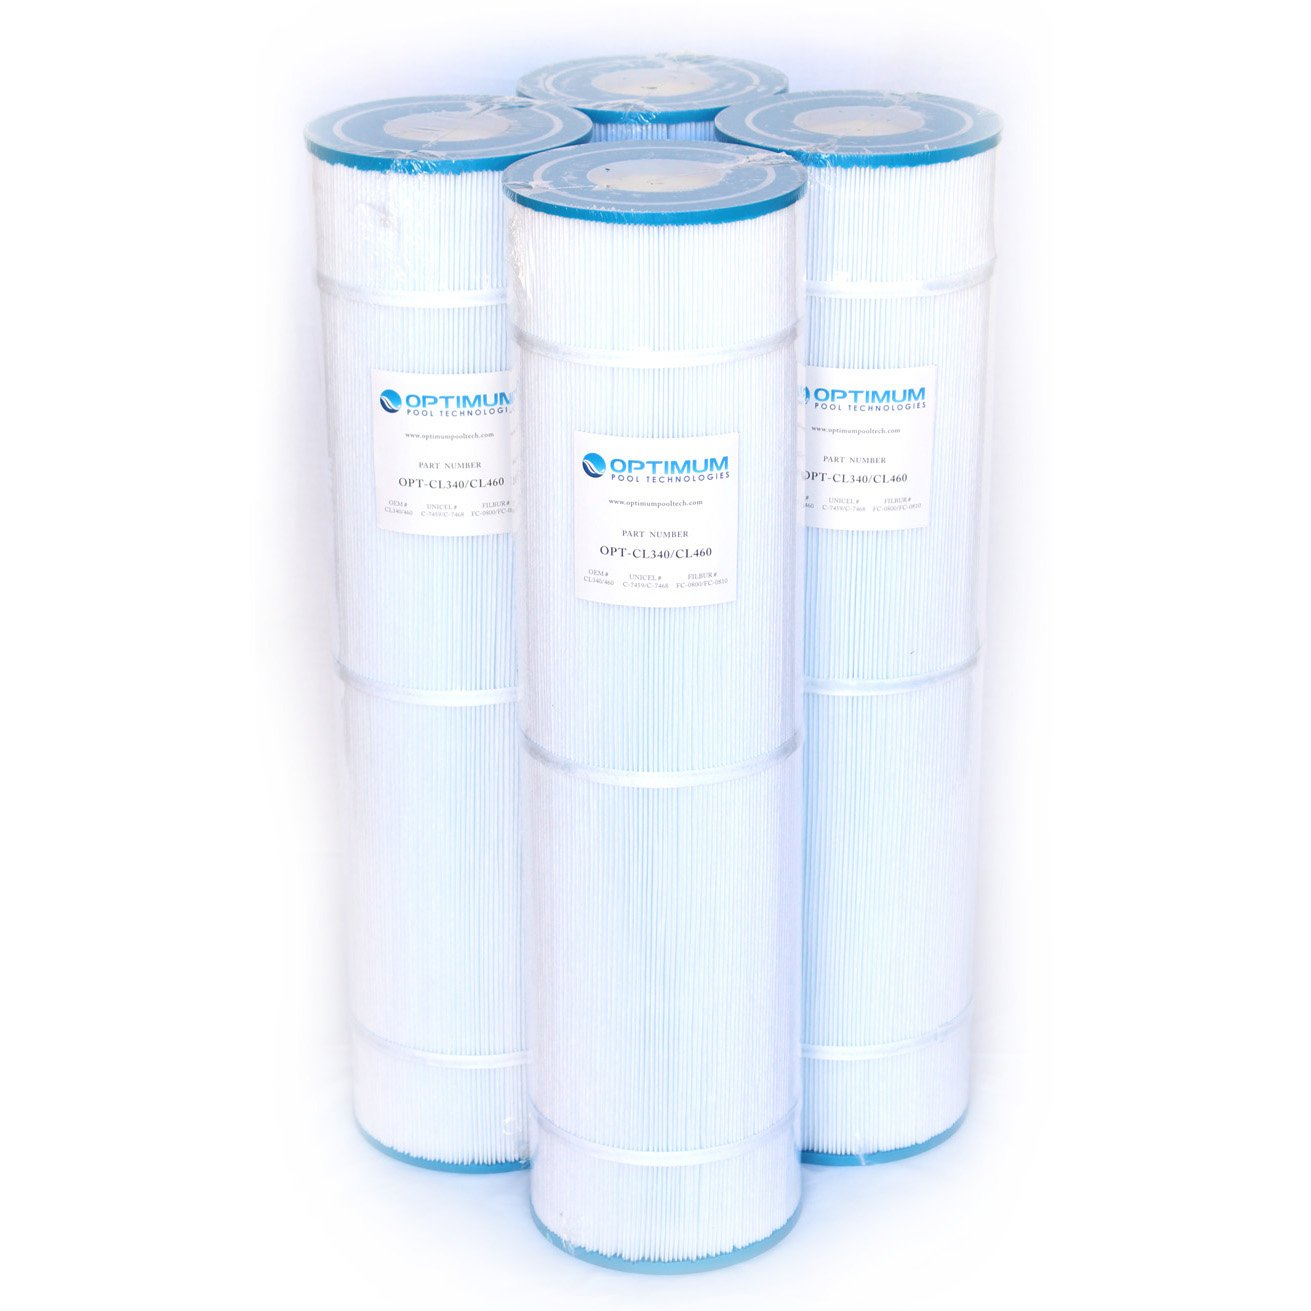 Pool Filter 4-Pack, Replaces Jandy CL460 R0554600, Unicel C-7468, Filbur FC-0810, & Pleatco PJAN115 Filter Cartridges